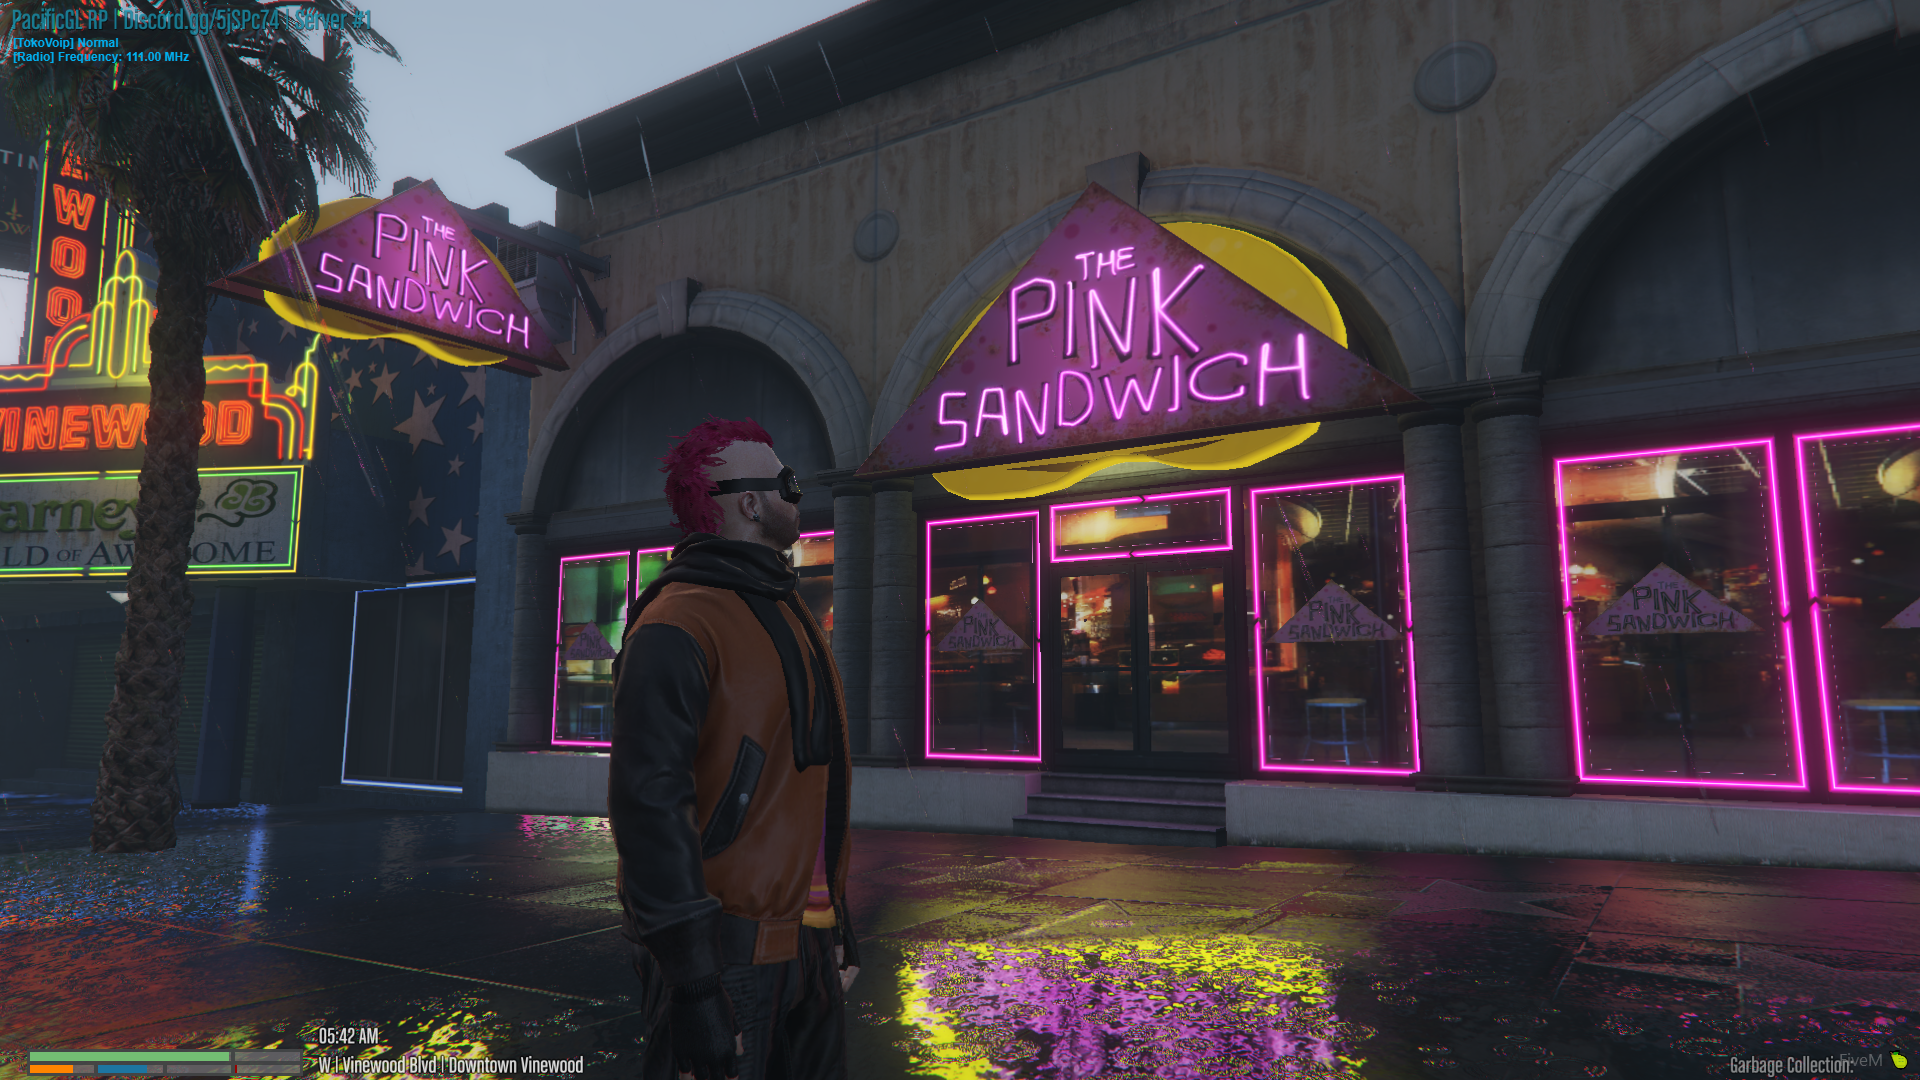 Tim at The Pink Sandwich